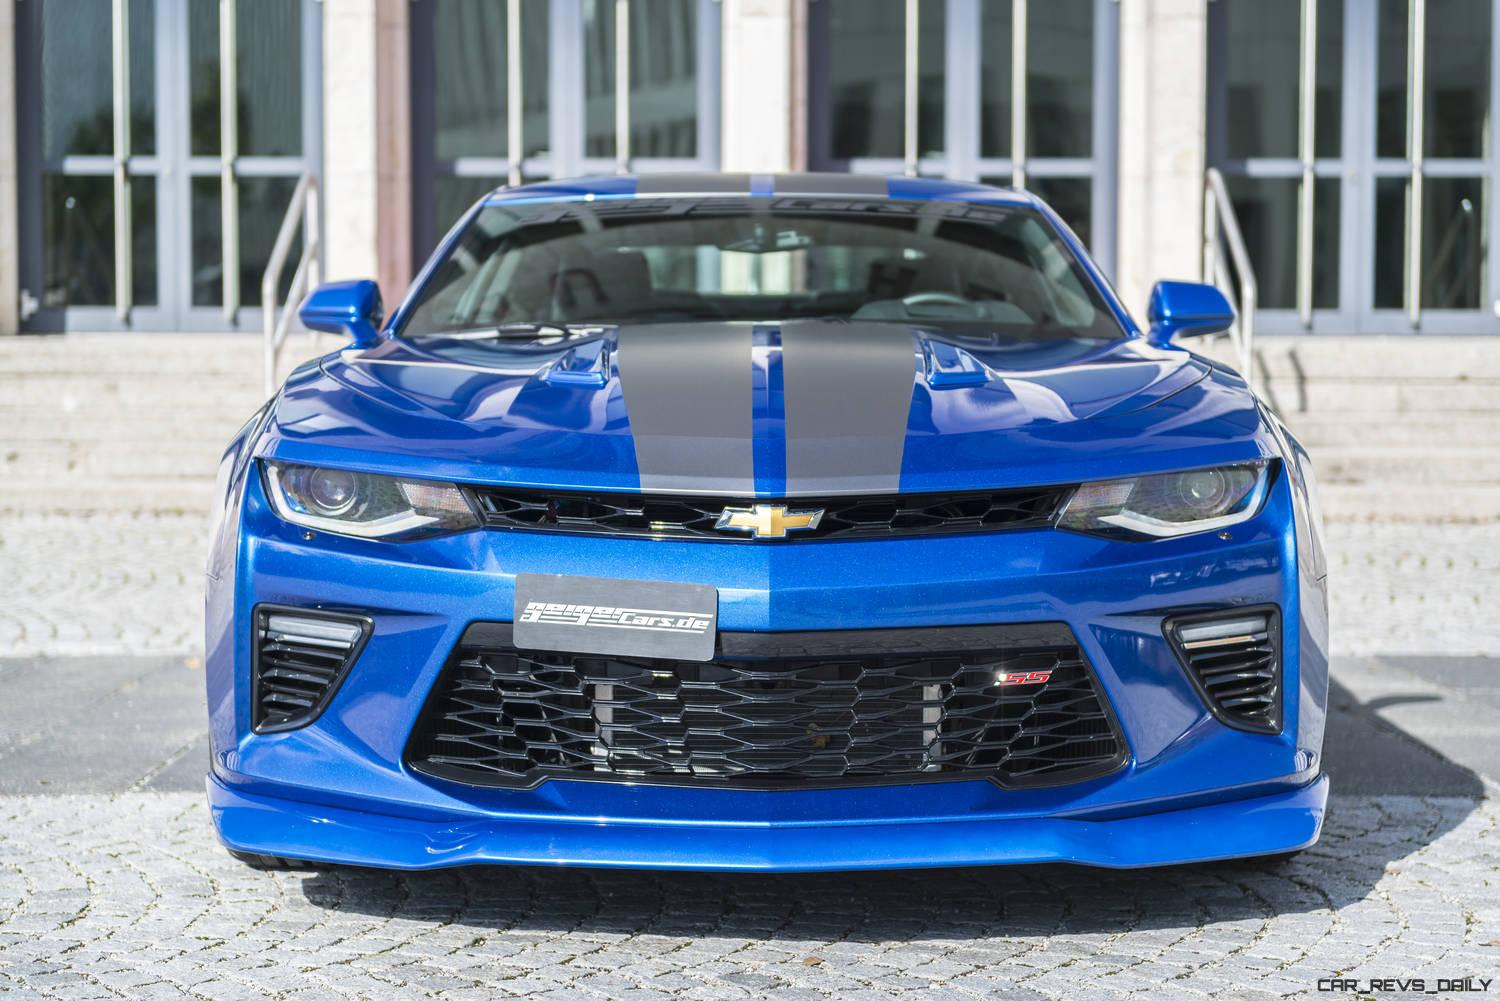 csm_geigercars-camaro-50th-anni-stripes_15_4fd55d4fed